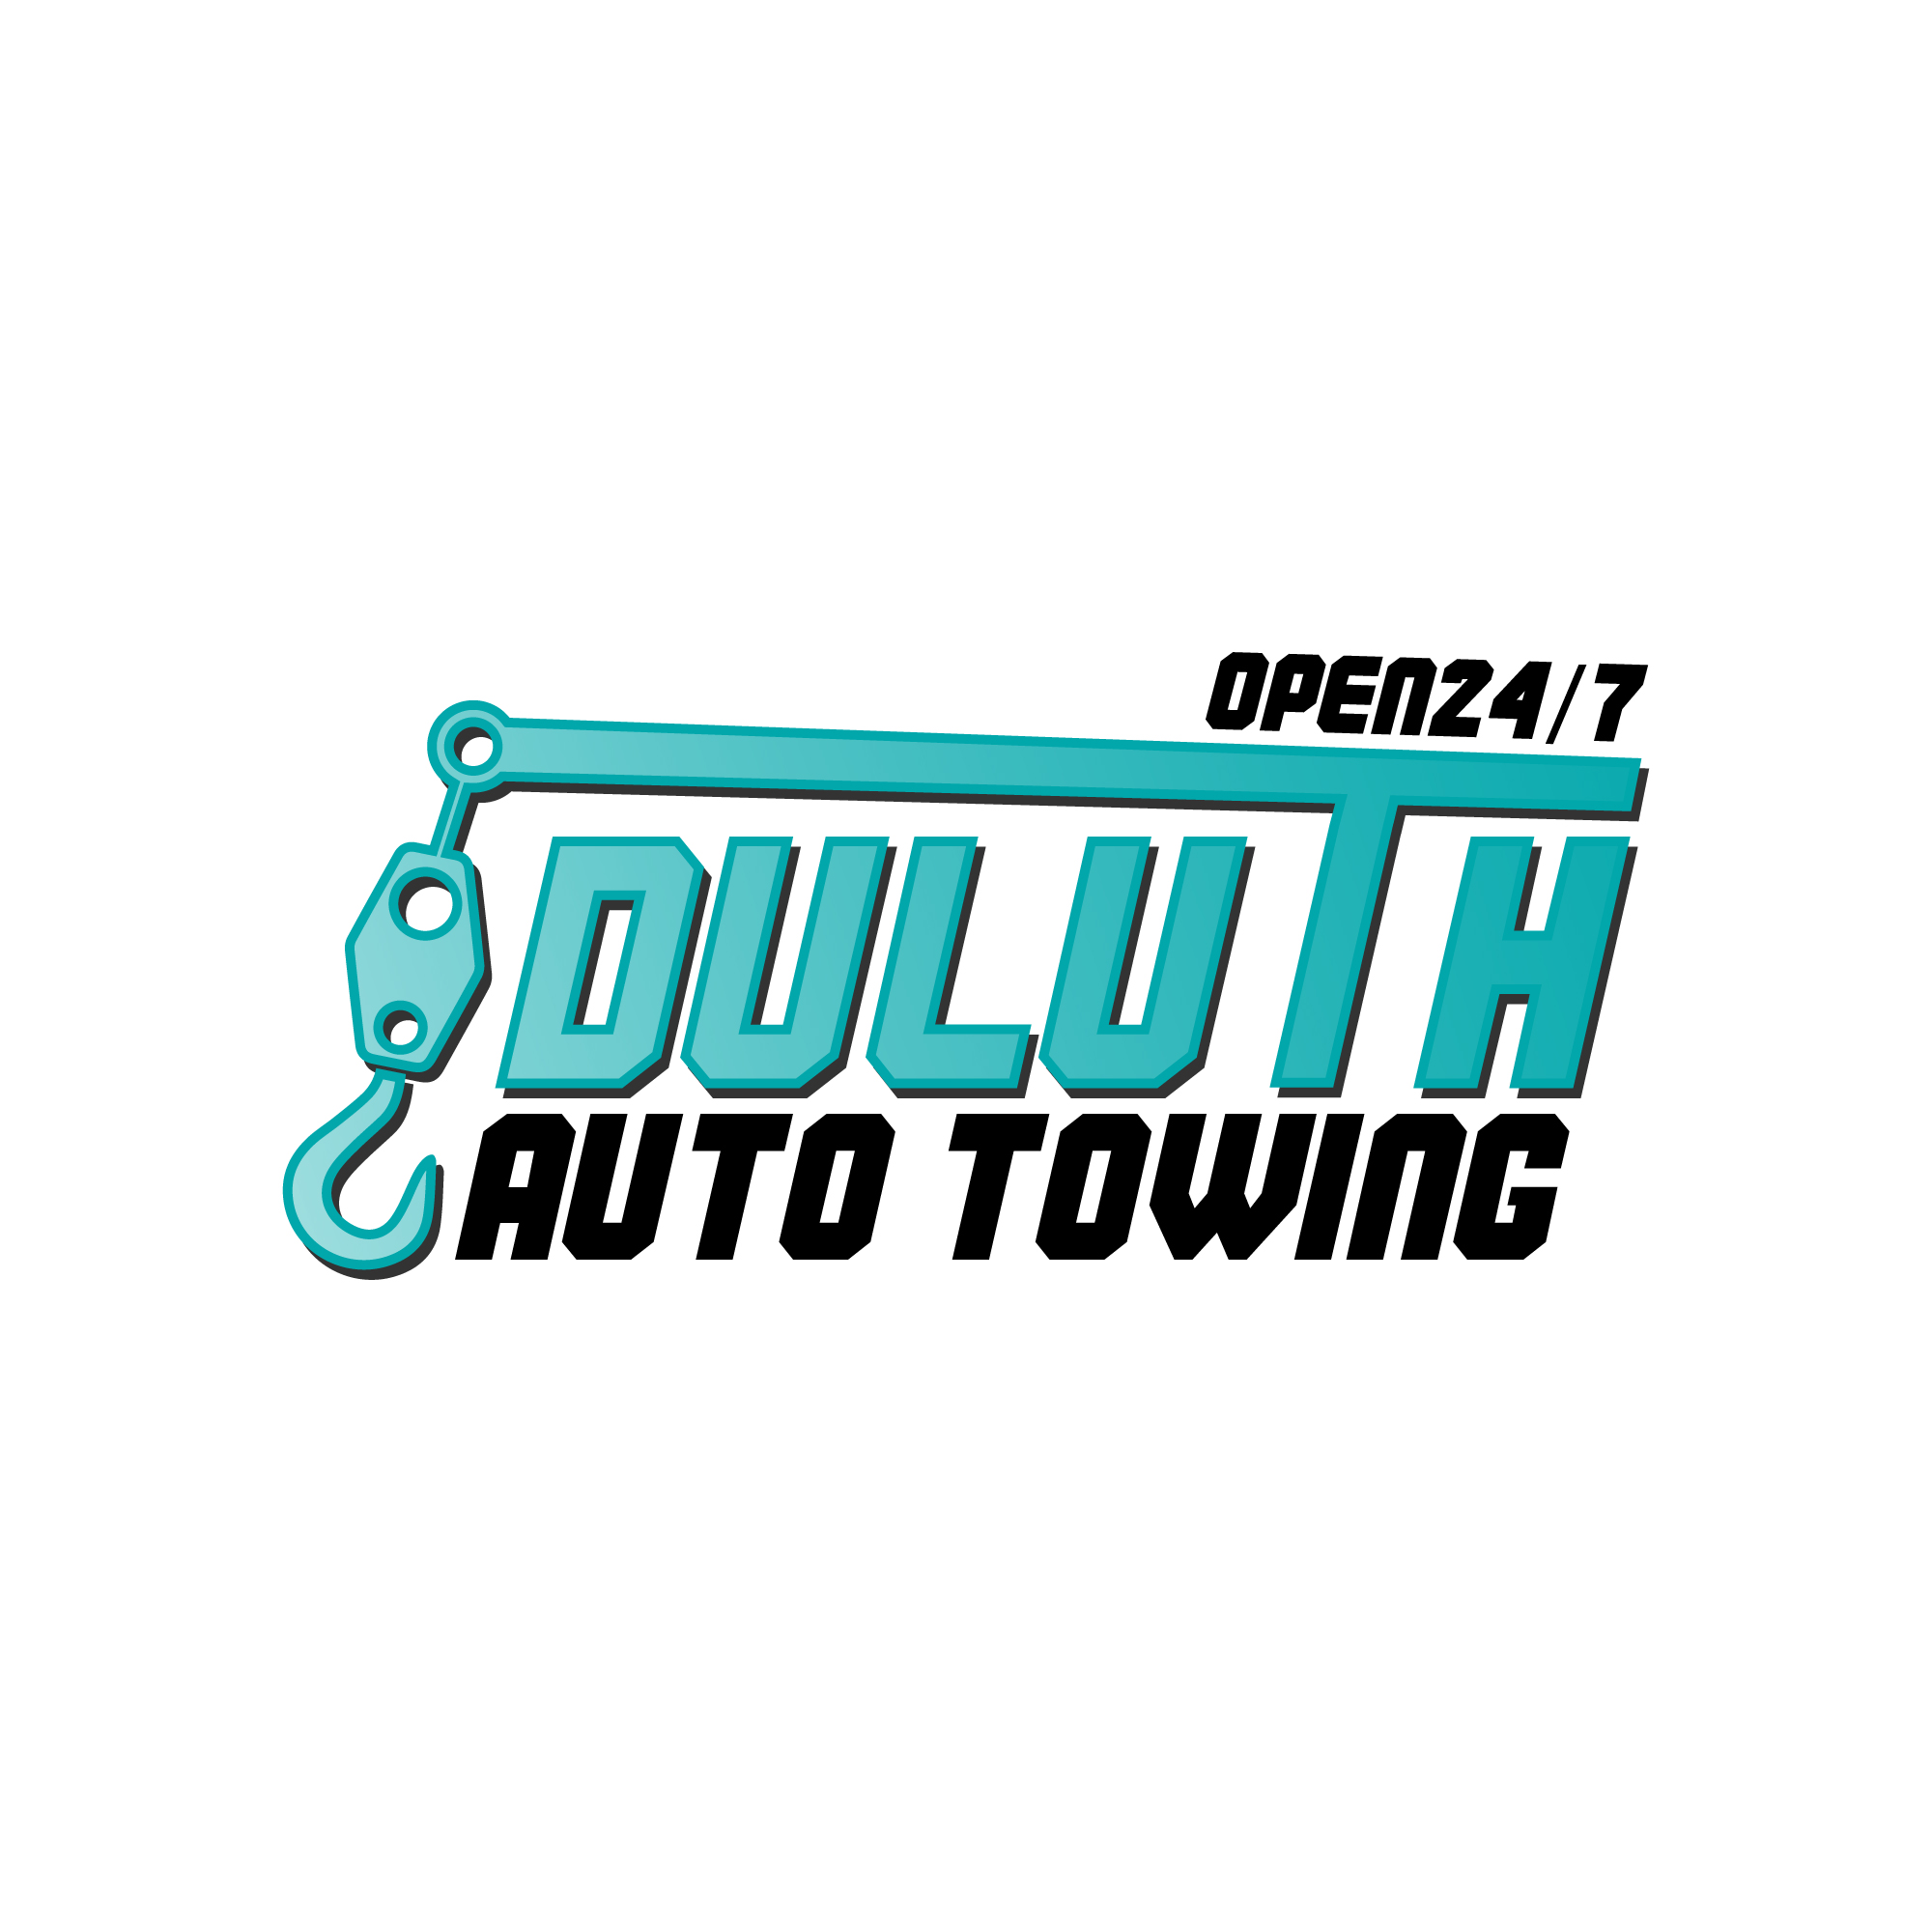 Duluth Auto Towing Announces Major Growth with The Launch of New Website and Expansion into New Areas